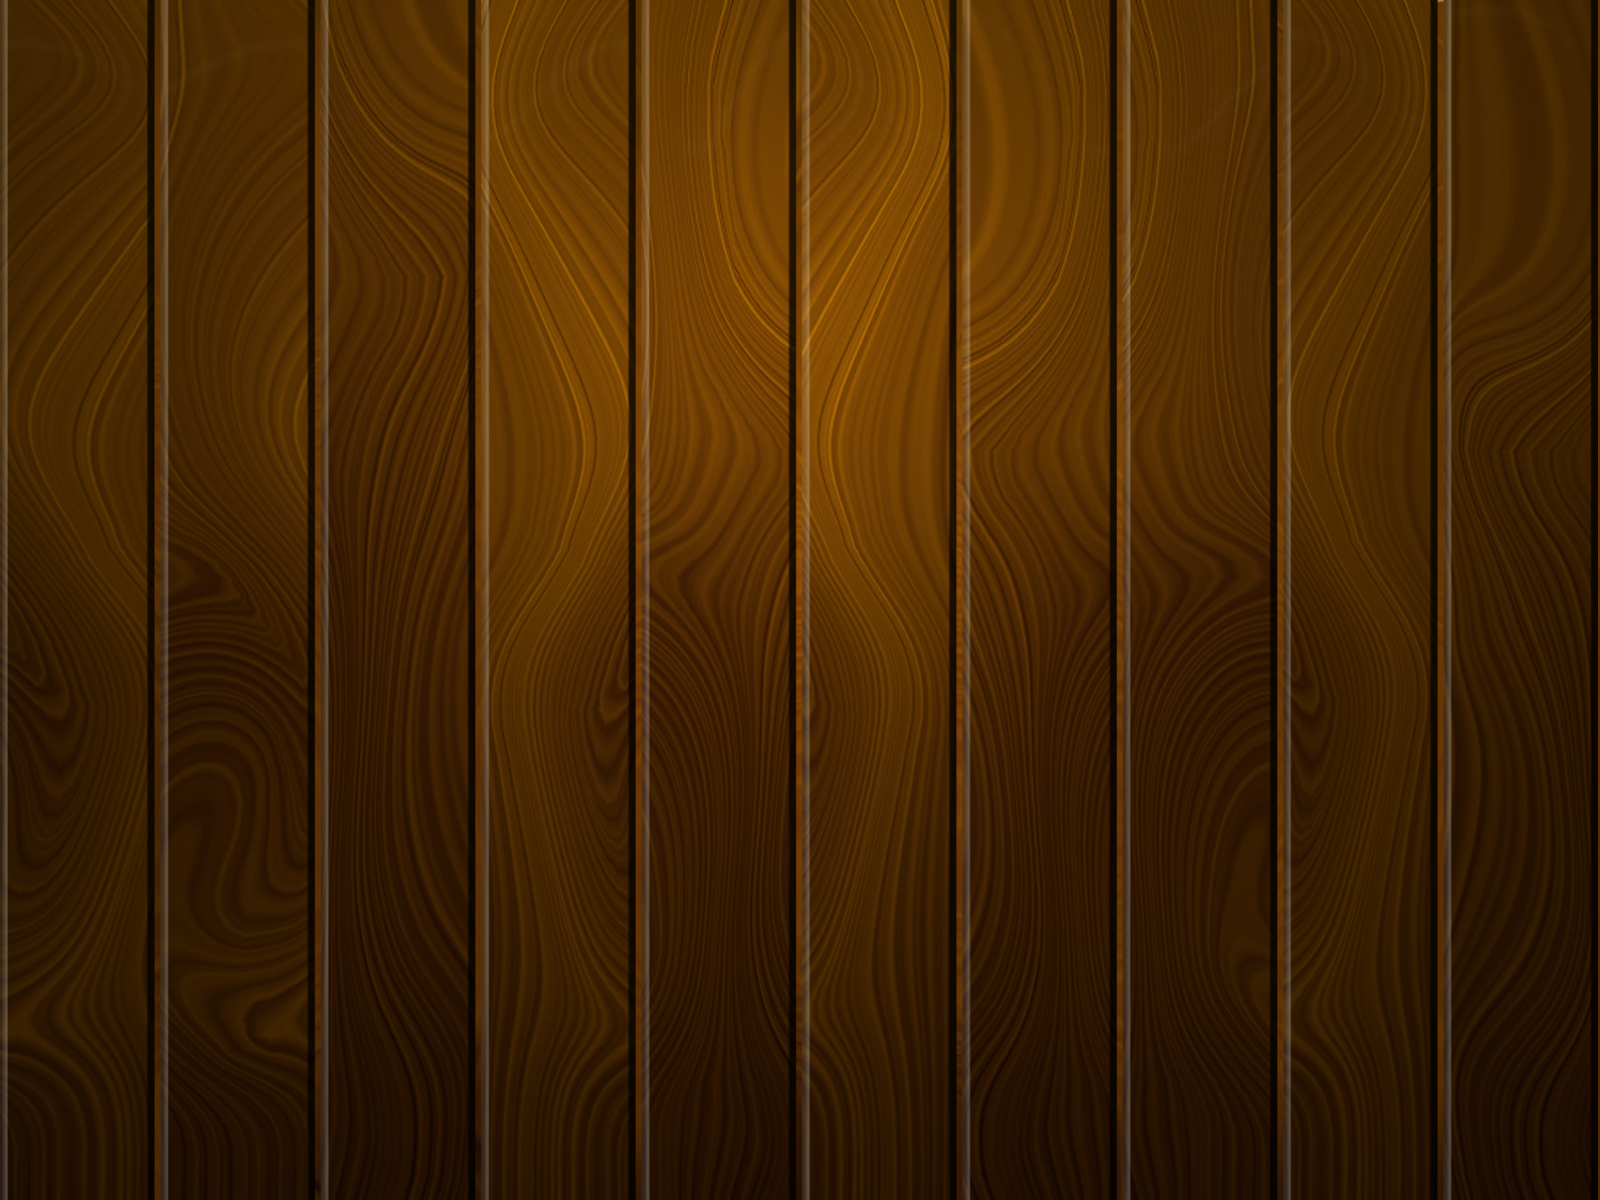 Wooden Photoshop Background Png image #24702